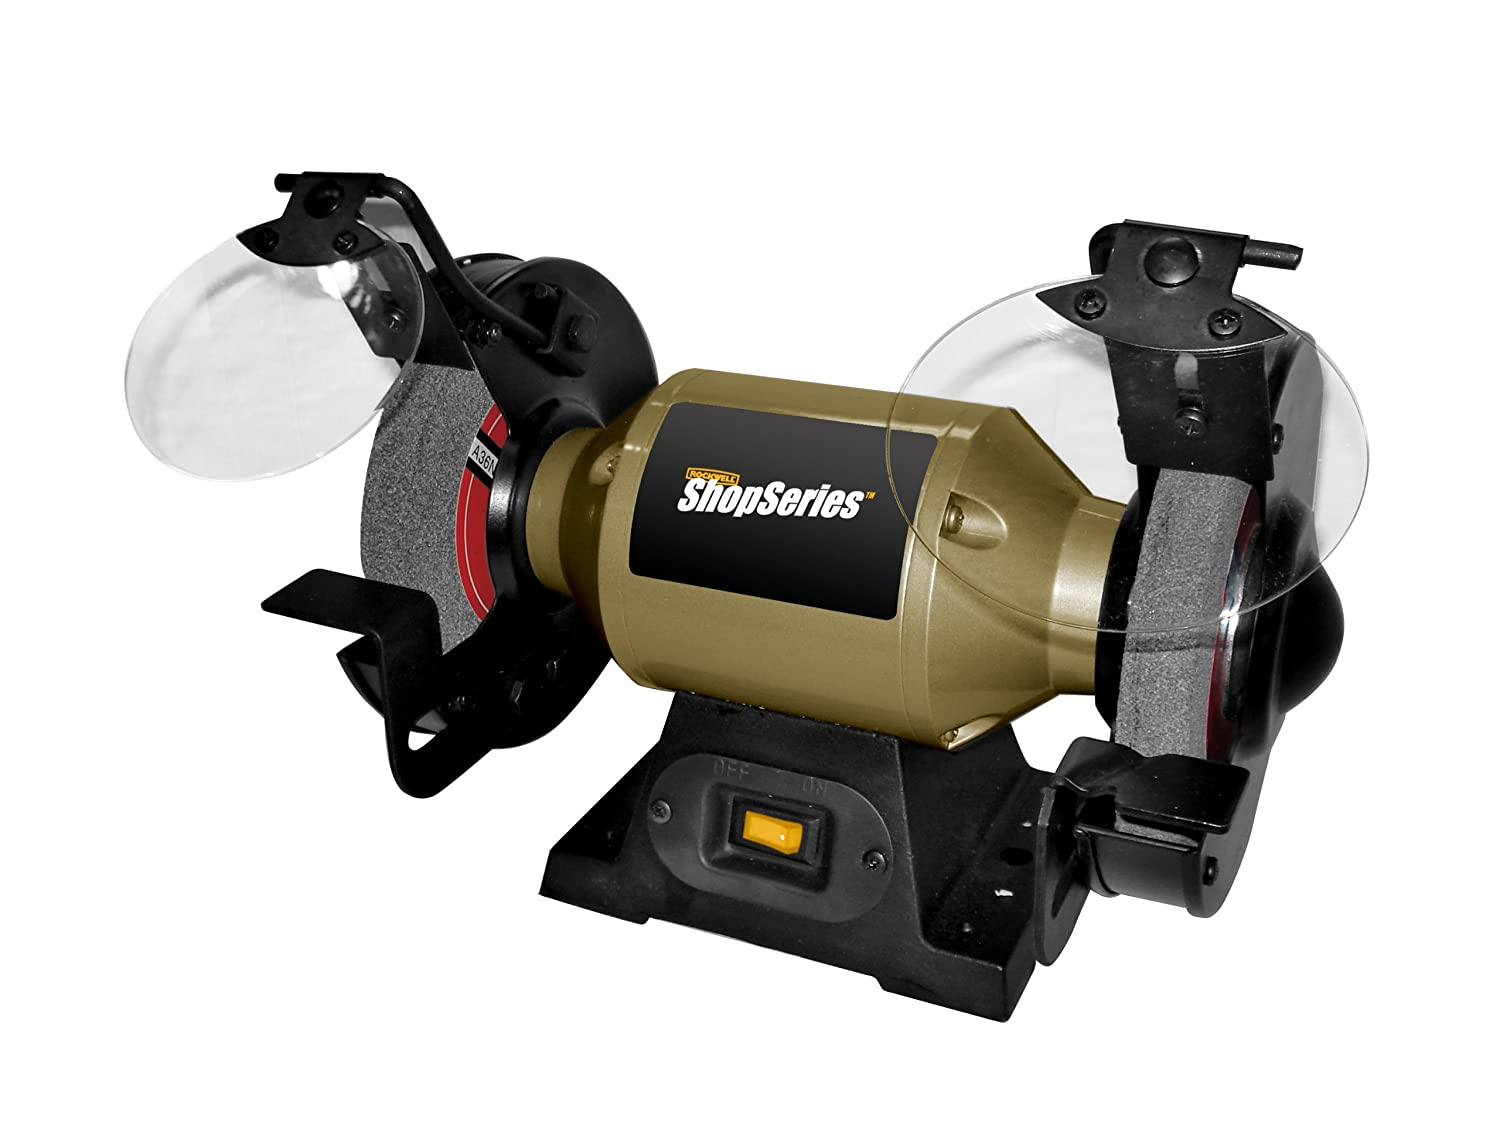 Ordinary 6 Variable Speed Bench Grinder Part - 14: Rockwell ShopSeries RK7867 6-Inch Bench Grinder - Power Bench Grinders -  Amazon.com